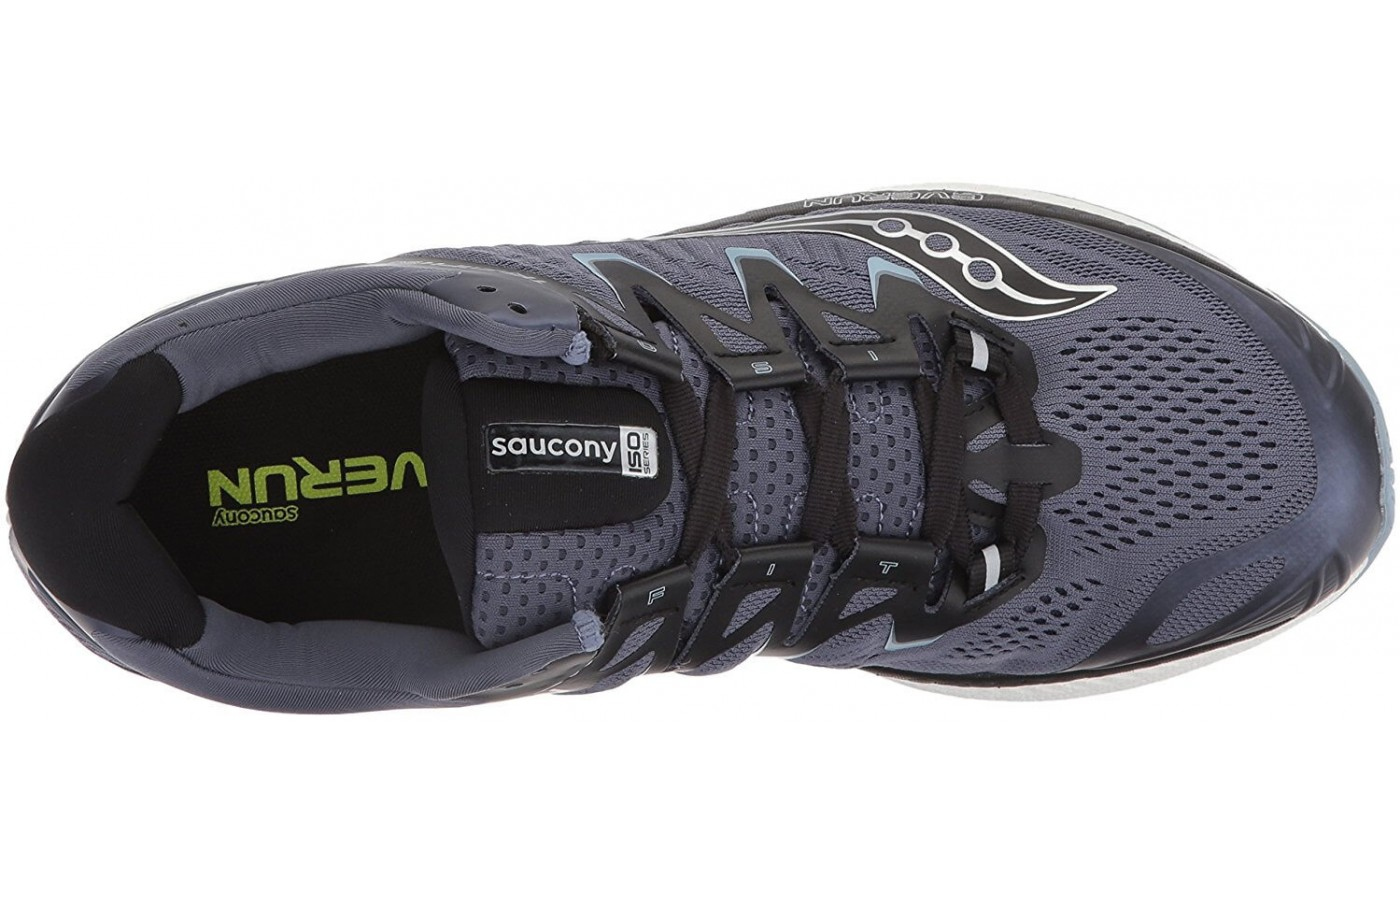 The ISOFIT upper stretches and adapts to the shape of the foot to give runners a customized running experience.